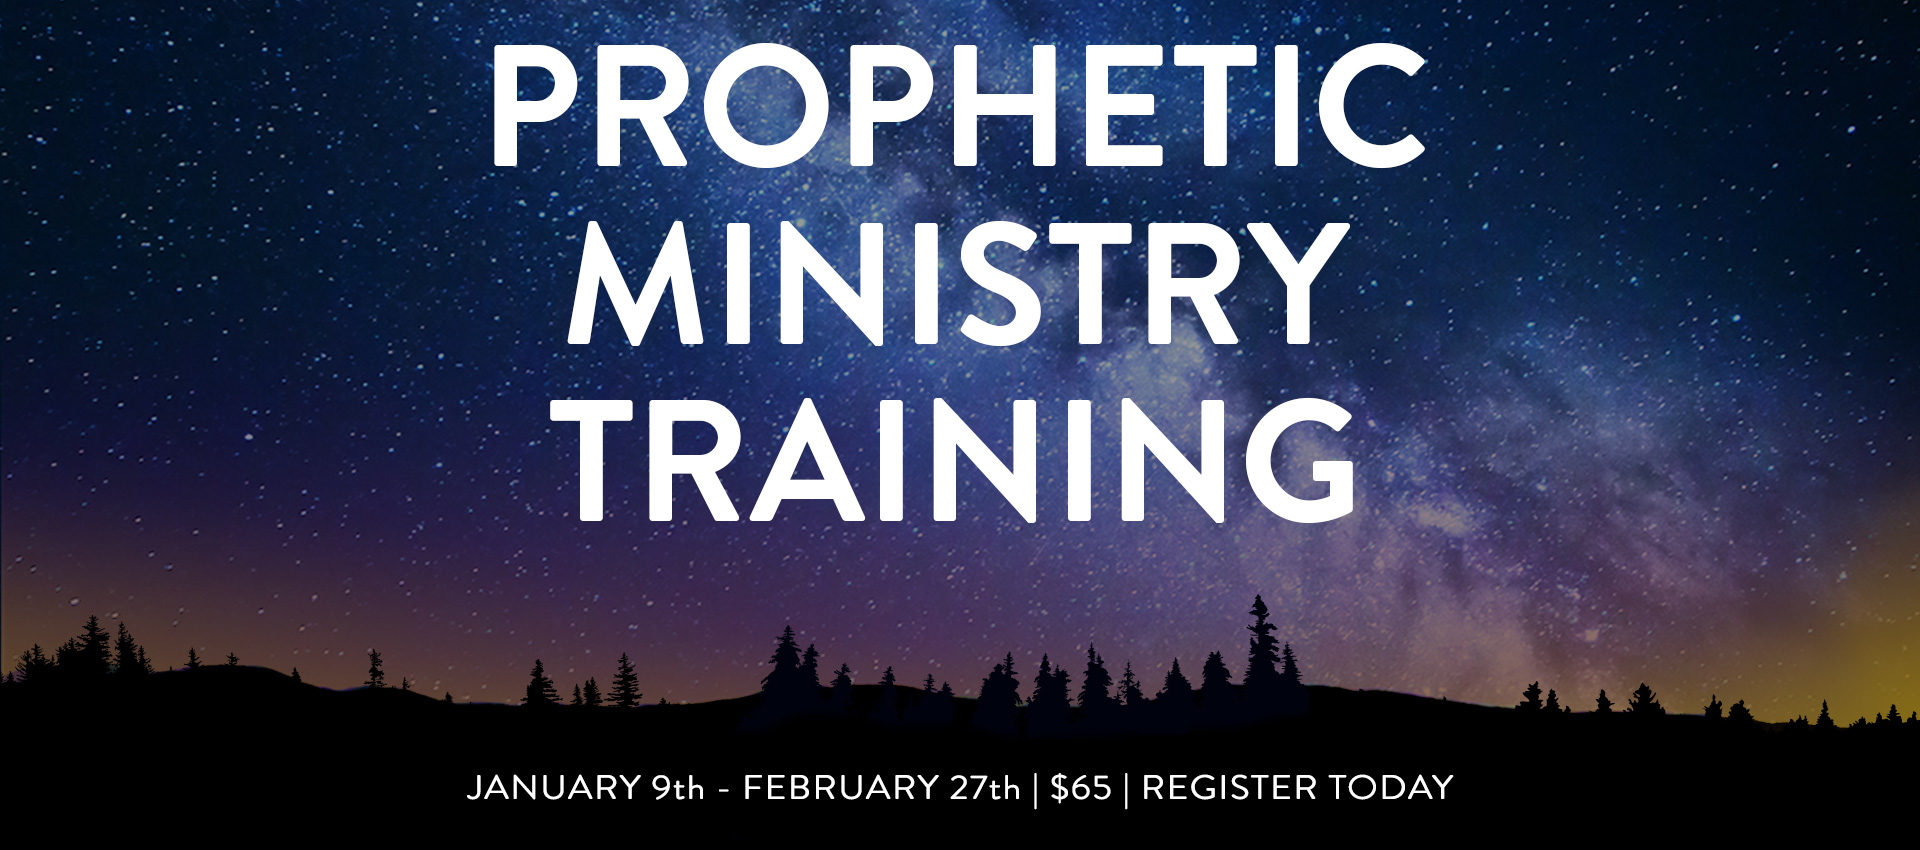 Prophetic Ministry Training